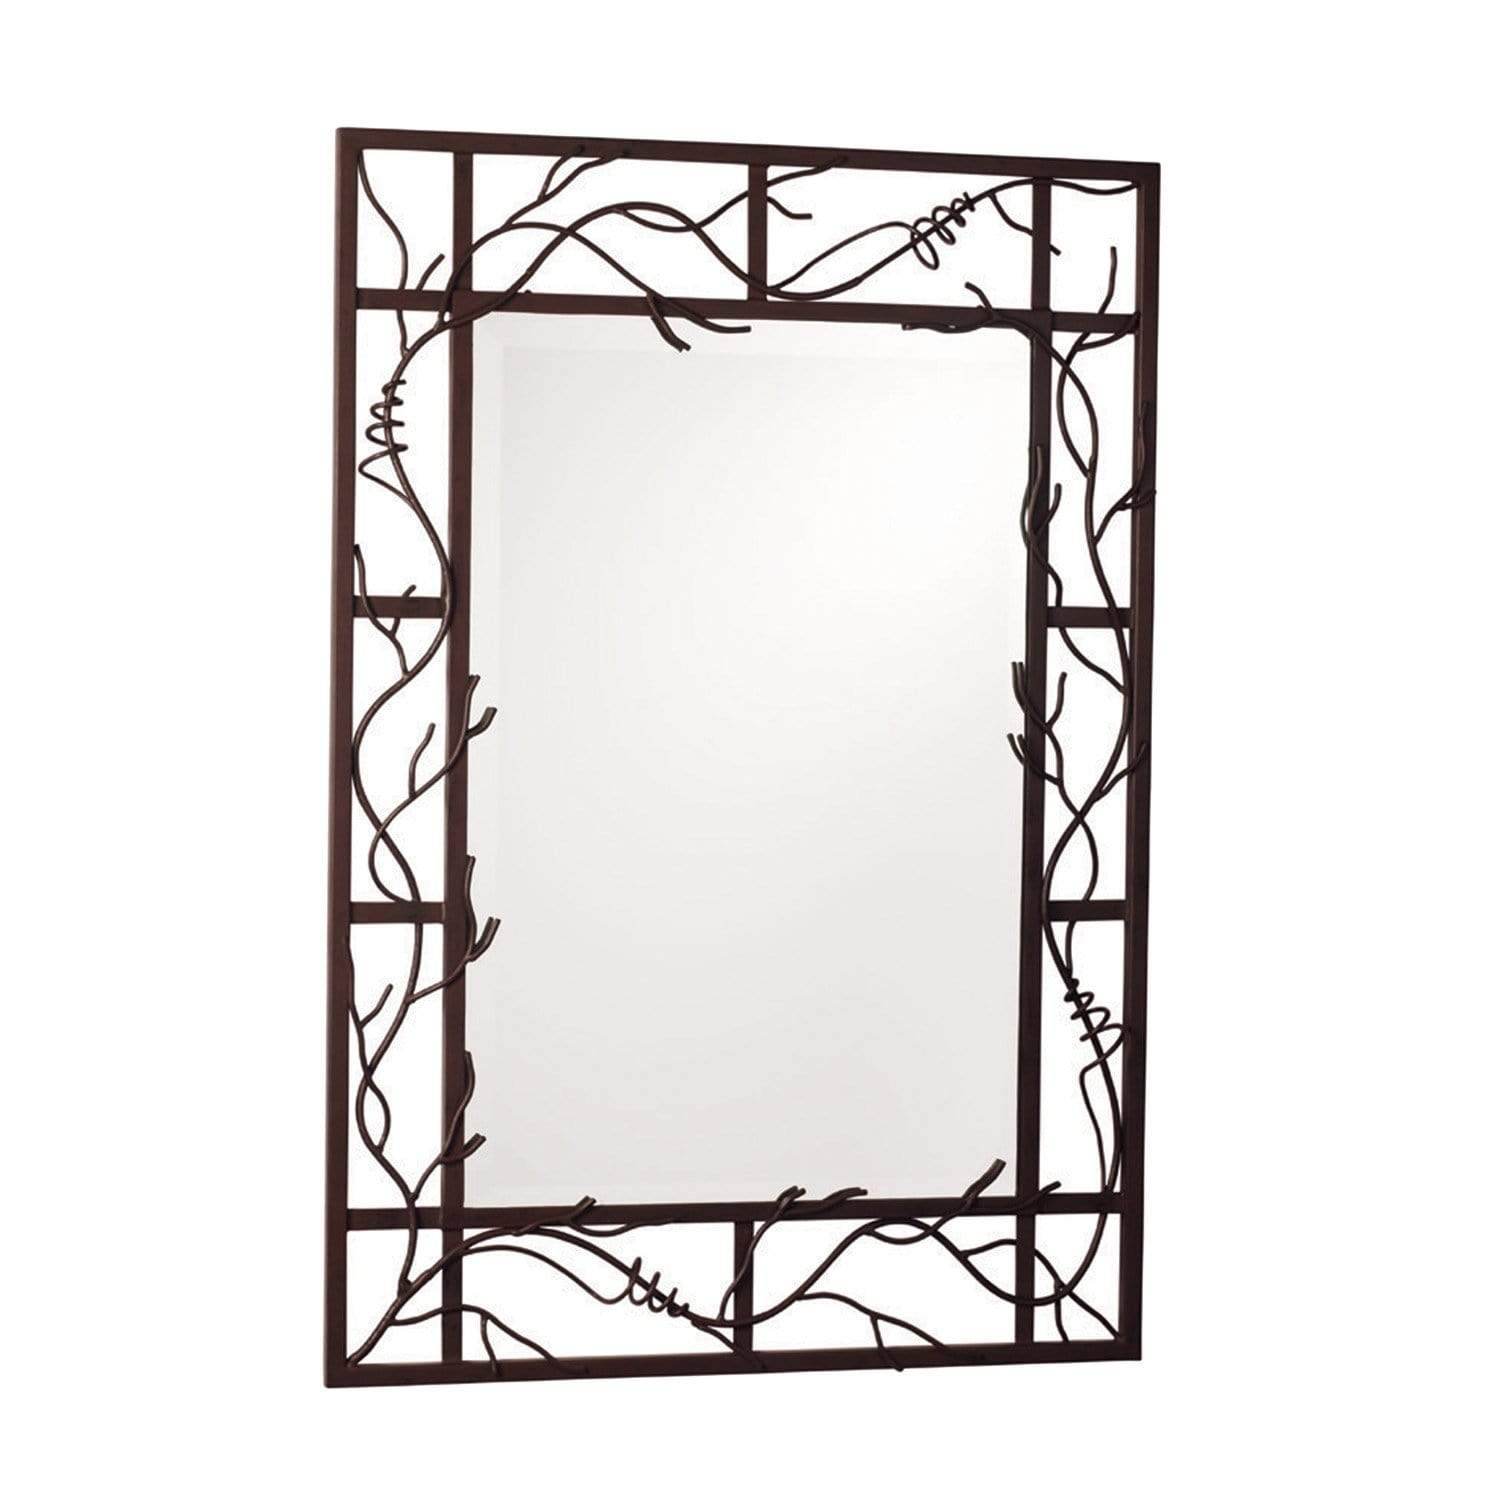 Kalco Lighting Mirrors Bark Vine Wall Mirror By Kalco Lighting 830